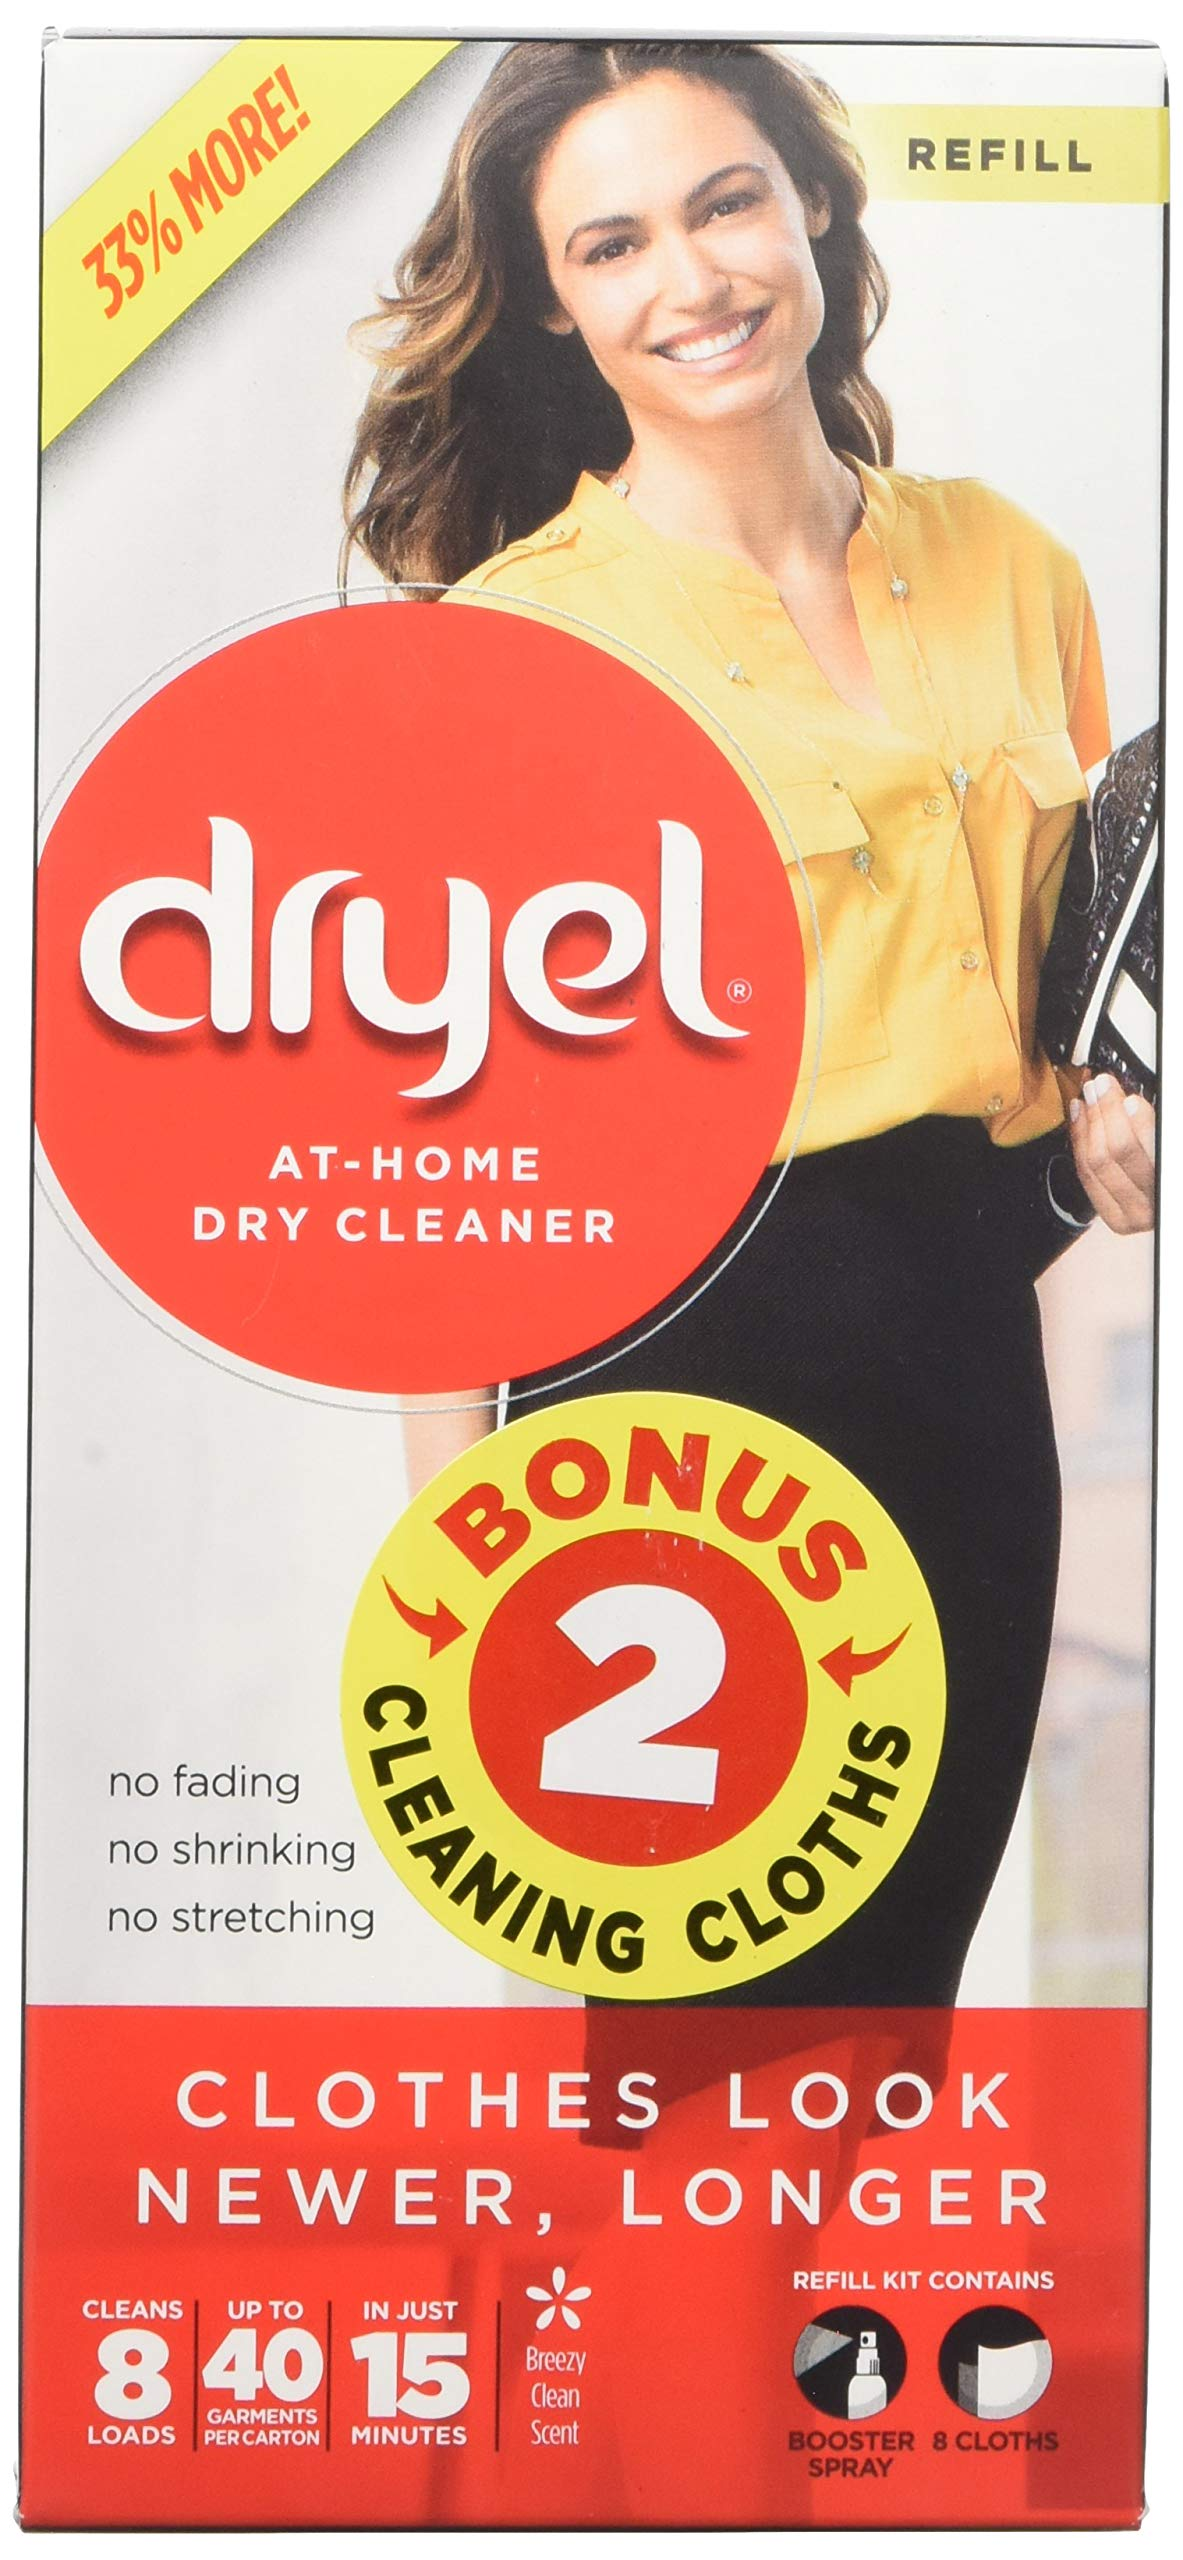 Dryel At-Home BONUS Dry Cleaner Refill Kit with Extra 2 Cloths, Includes Dry Cleaning Cloths -  8 Load Capacity by dryel